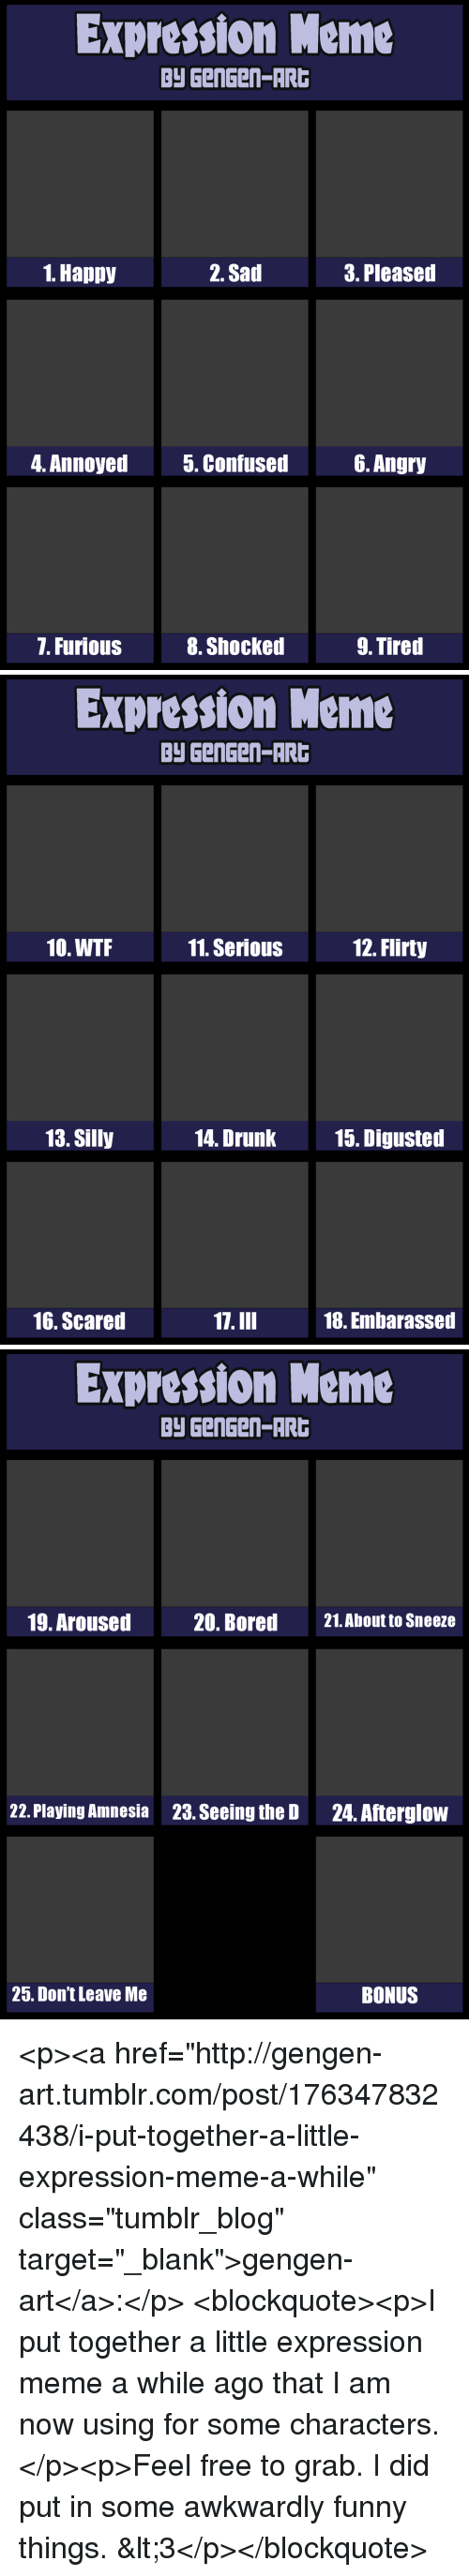 "flirty: Expression Meme  Py GenGen-AR  1. Happy  2. Sad  3. Pleased  4. Annoyed  5. Confused6. Angry  7. Furious  8. Shocked  9. Tired   Expression Meme  Py GenGen-AR  10. WTF  11. SeriouS  12. Flirty  13. Silly  14. Drunk  15. Digusted  16. Scared  17.III  18. Embarassed   Expression Meme  Py GenGen-AR  19. Aroused  20. Bored  21.About to Sneeze  22. Playing Amnesia  23. Seeing the D  24. Afterglow  25. Don't Leave Me  BONUS <p><a href=""http://gengen-art.tumblr.com/post/176347832438/i-put-together-a-little-expression-meme-a-while"" class=""tumblr_blog"" target=""_blank"">gengen-art</a>:</p>  <blockquote><p>I put together a little expression meme a while ago that I am now using for some characters.</p><p>Feel free to grab. I did put in some awkwardly funny things. &lt;3</p></blockquote>"